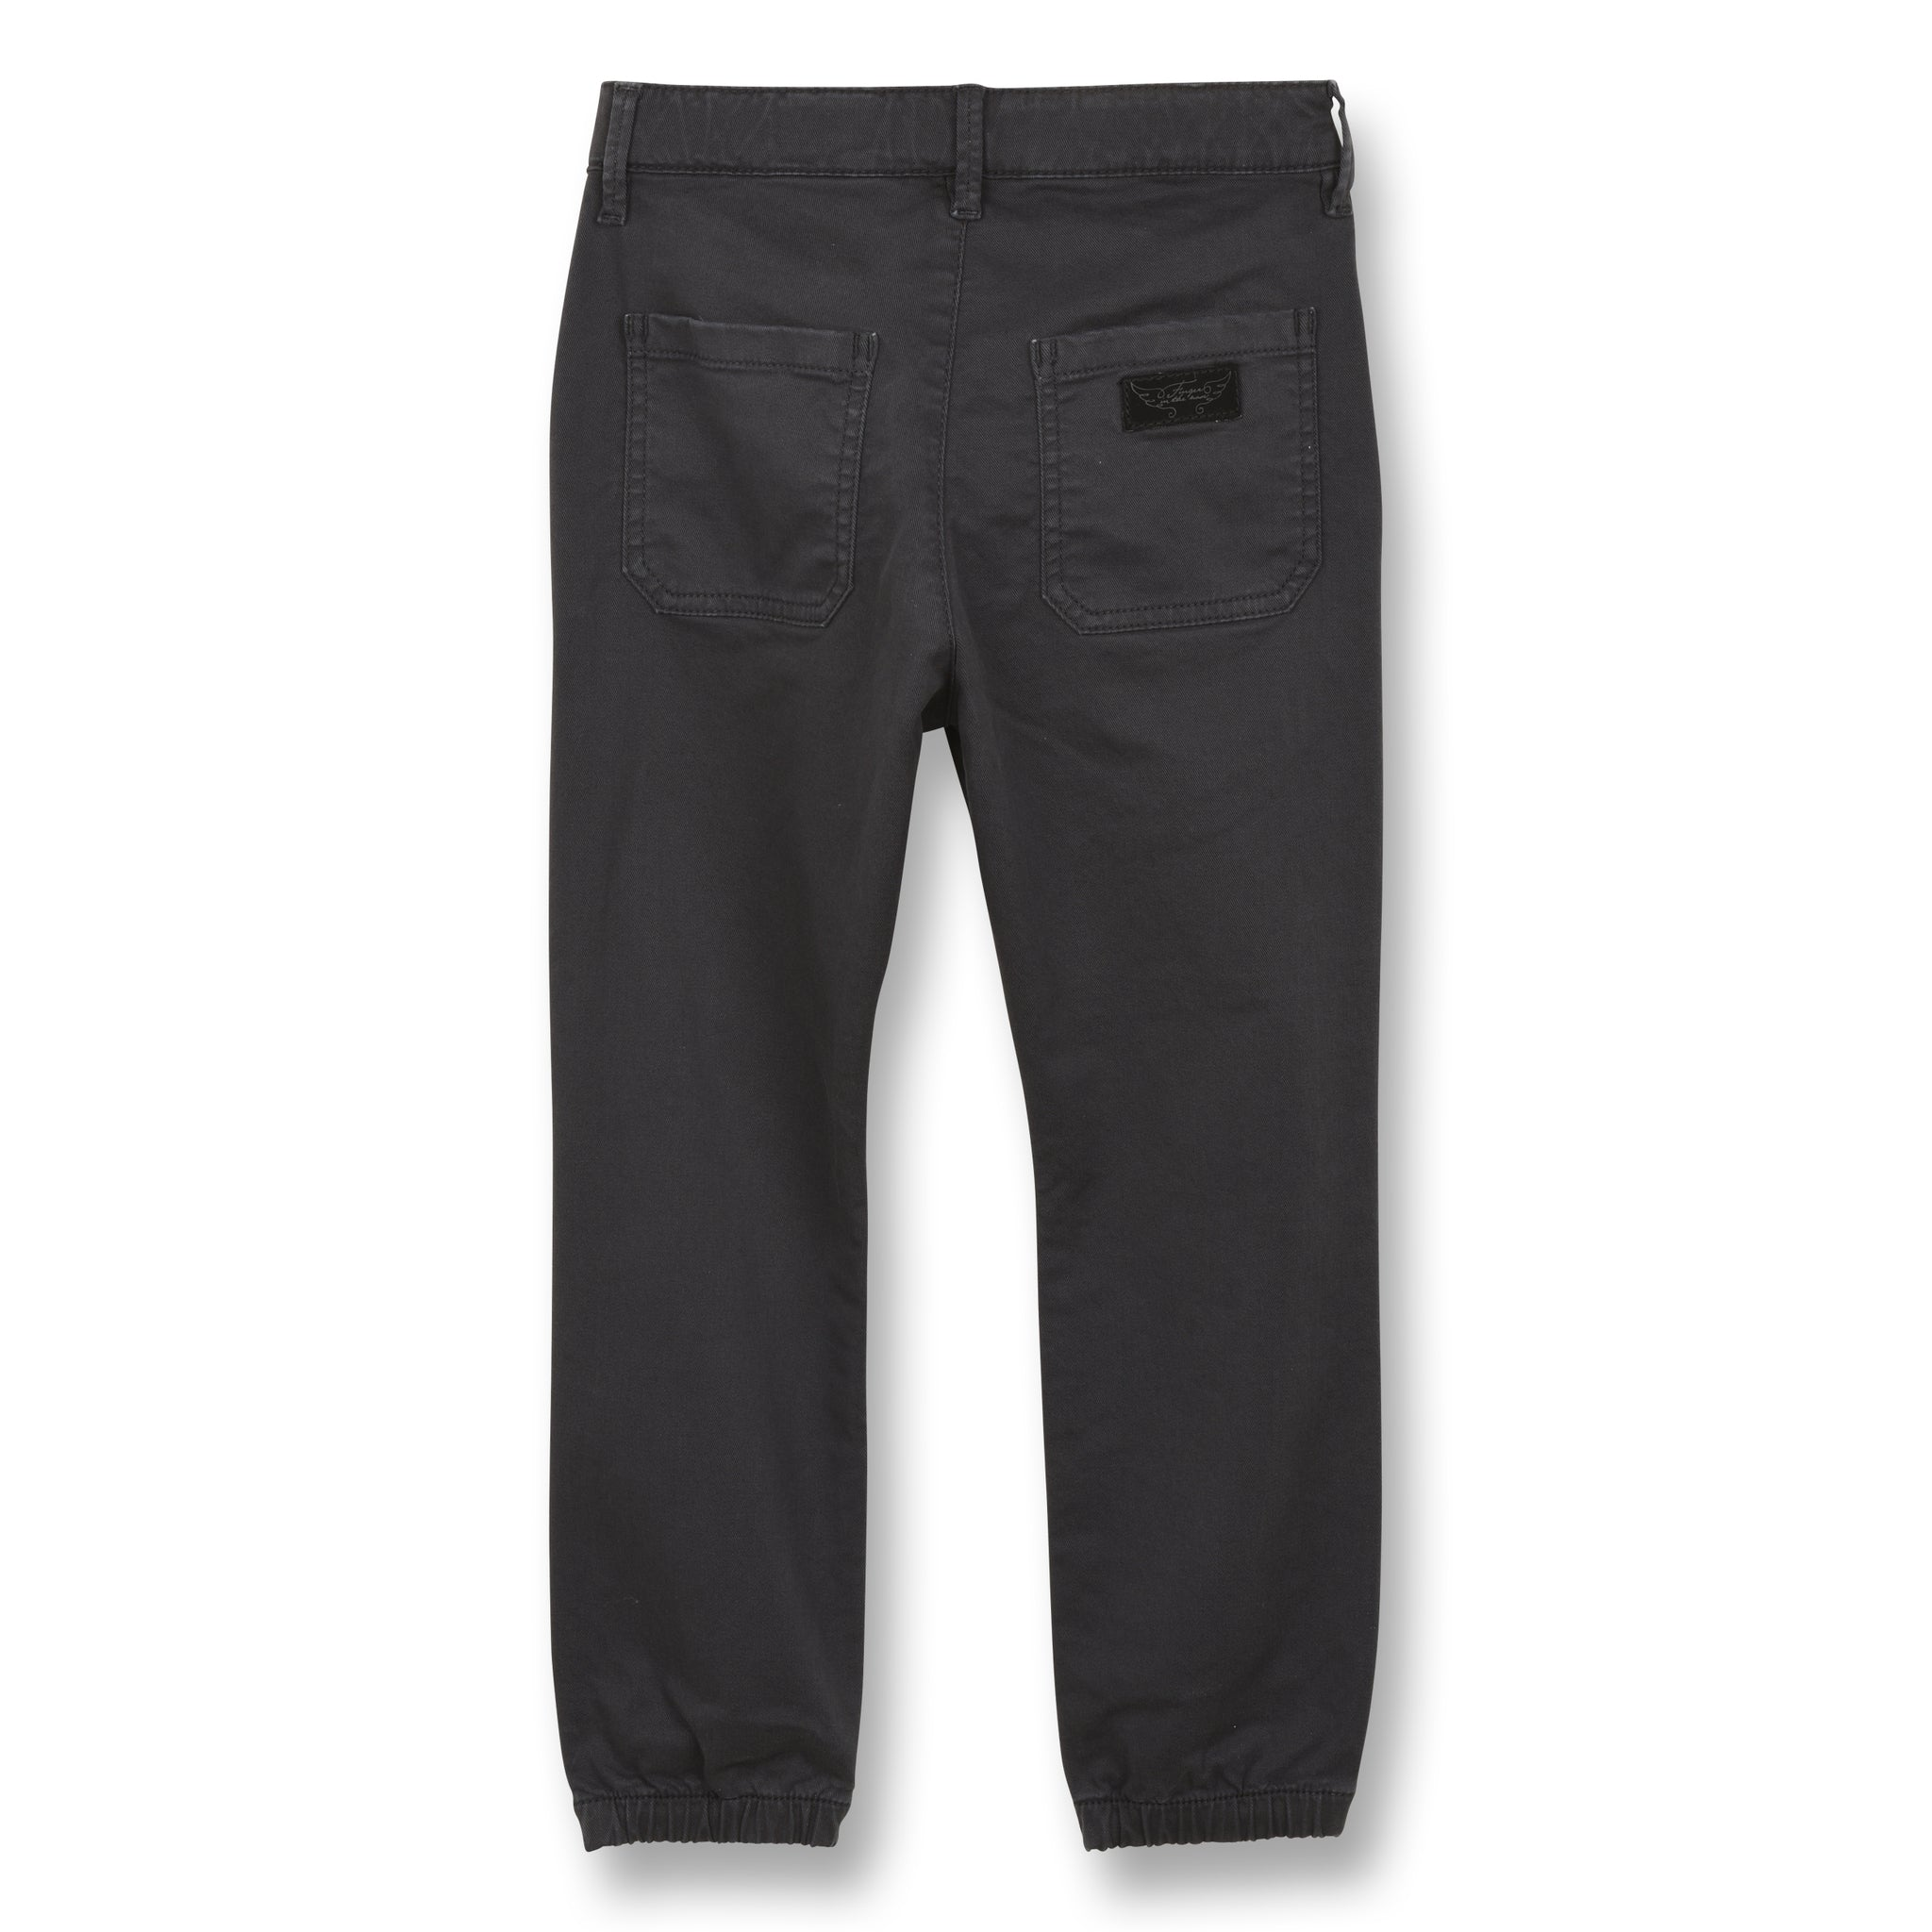 SKATER Convoy Grey - Elasticed Bottom Chino Fit Pants 2